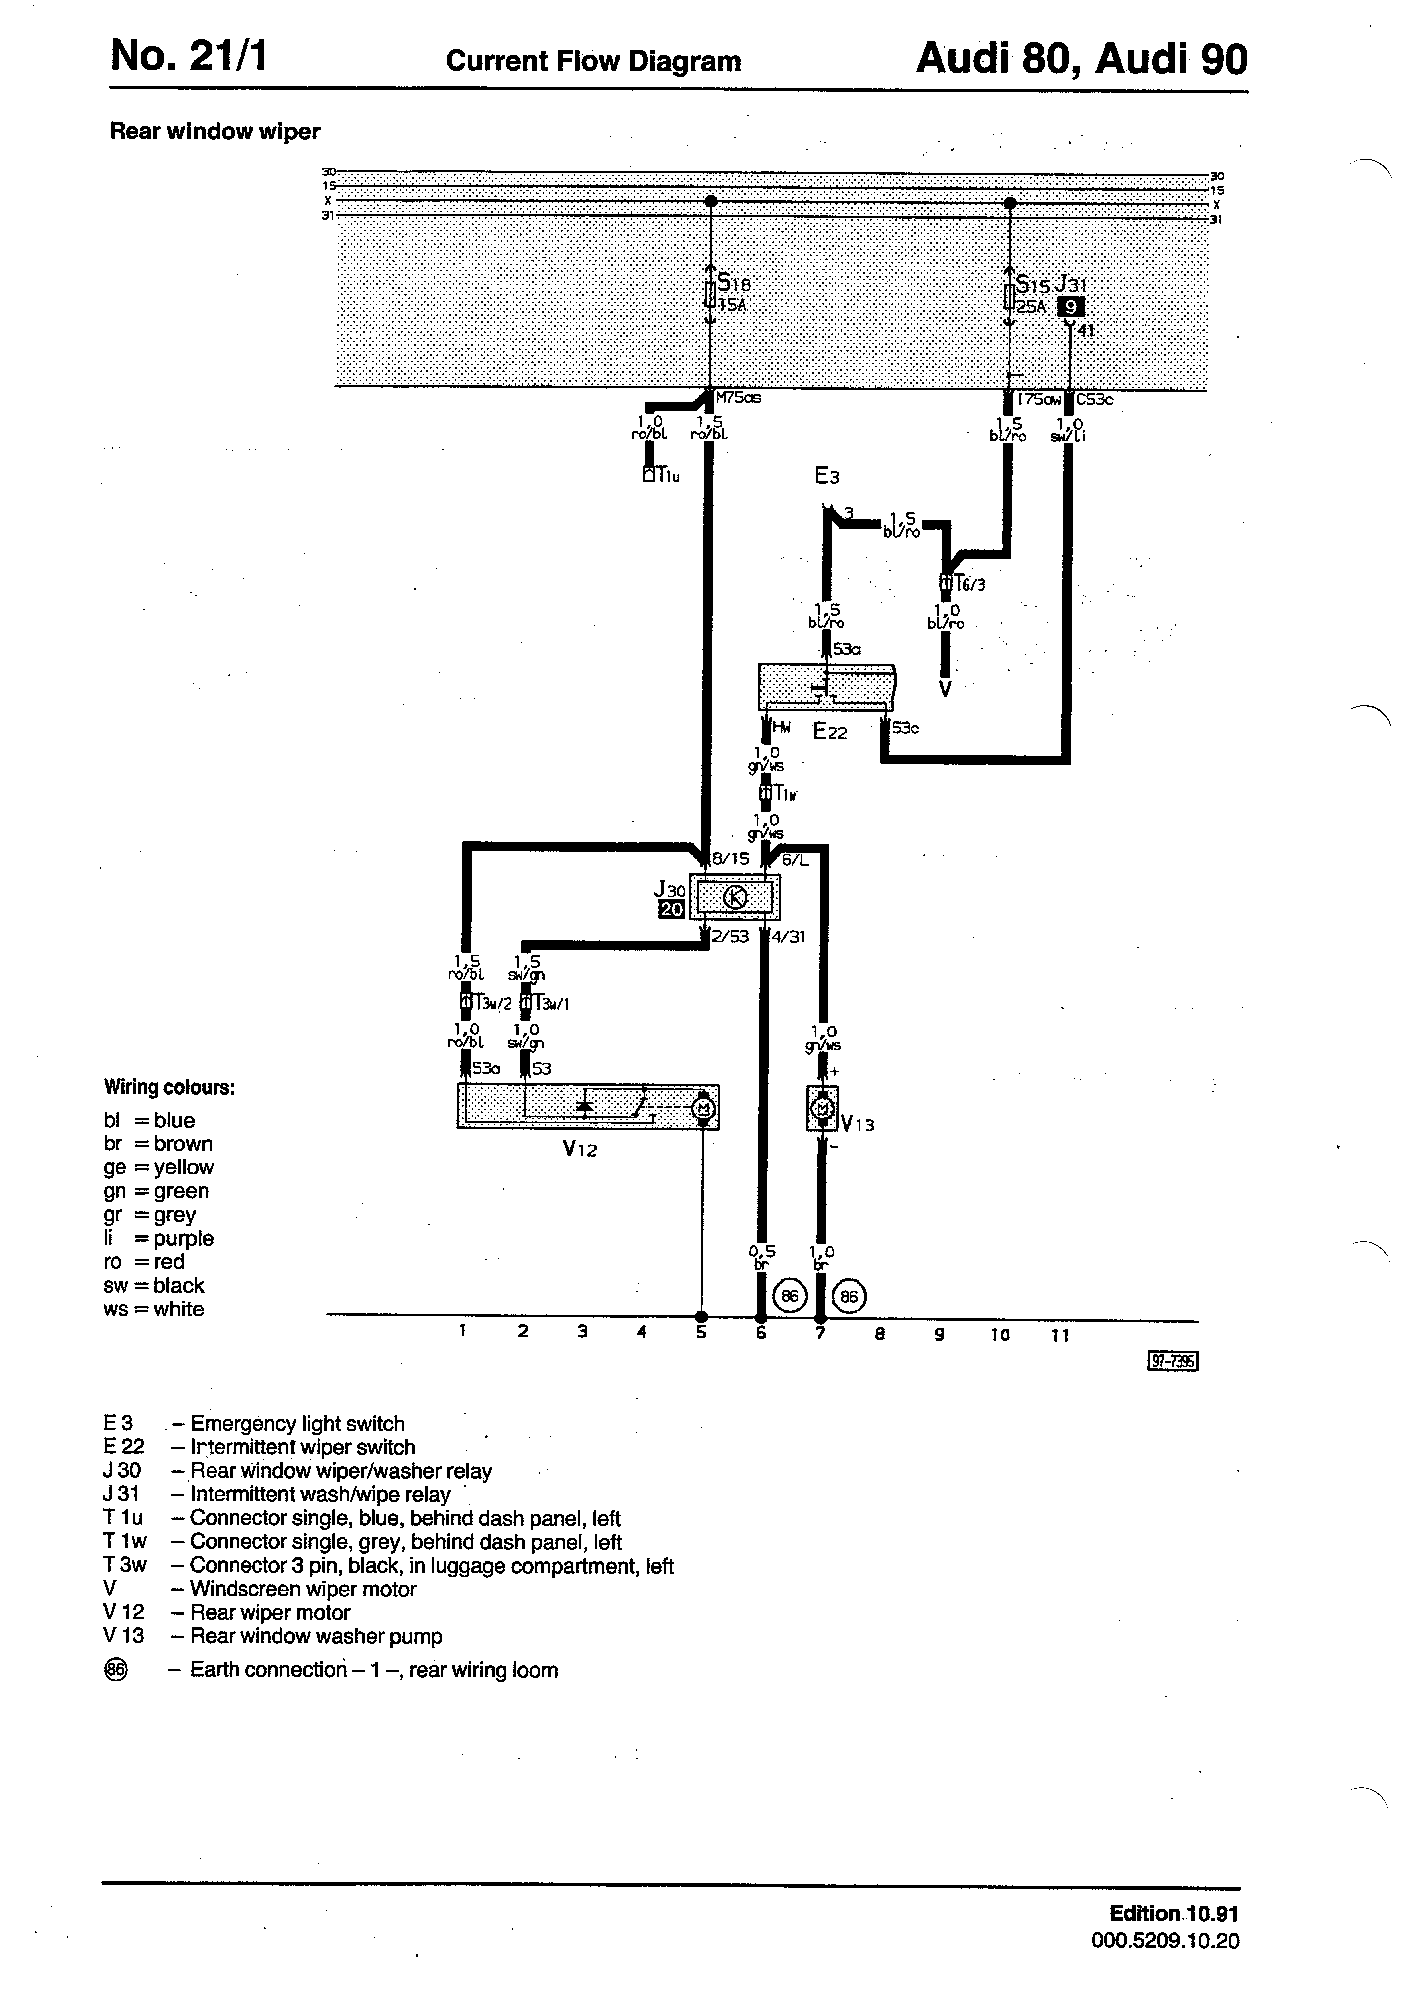 f59 wiring schematic wiring diagram onlinef59 wiring schematic simple wiring diagram schema air conditioner schematic wiring diagram f59 wiring schematic